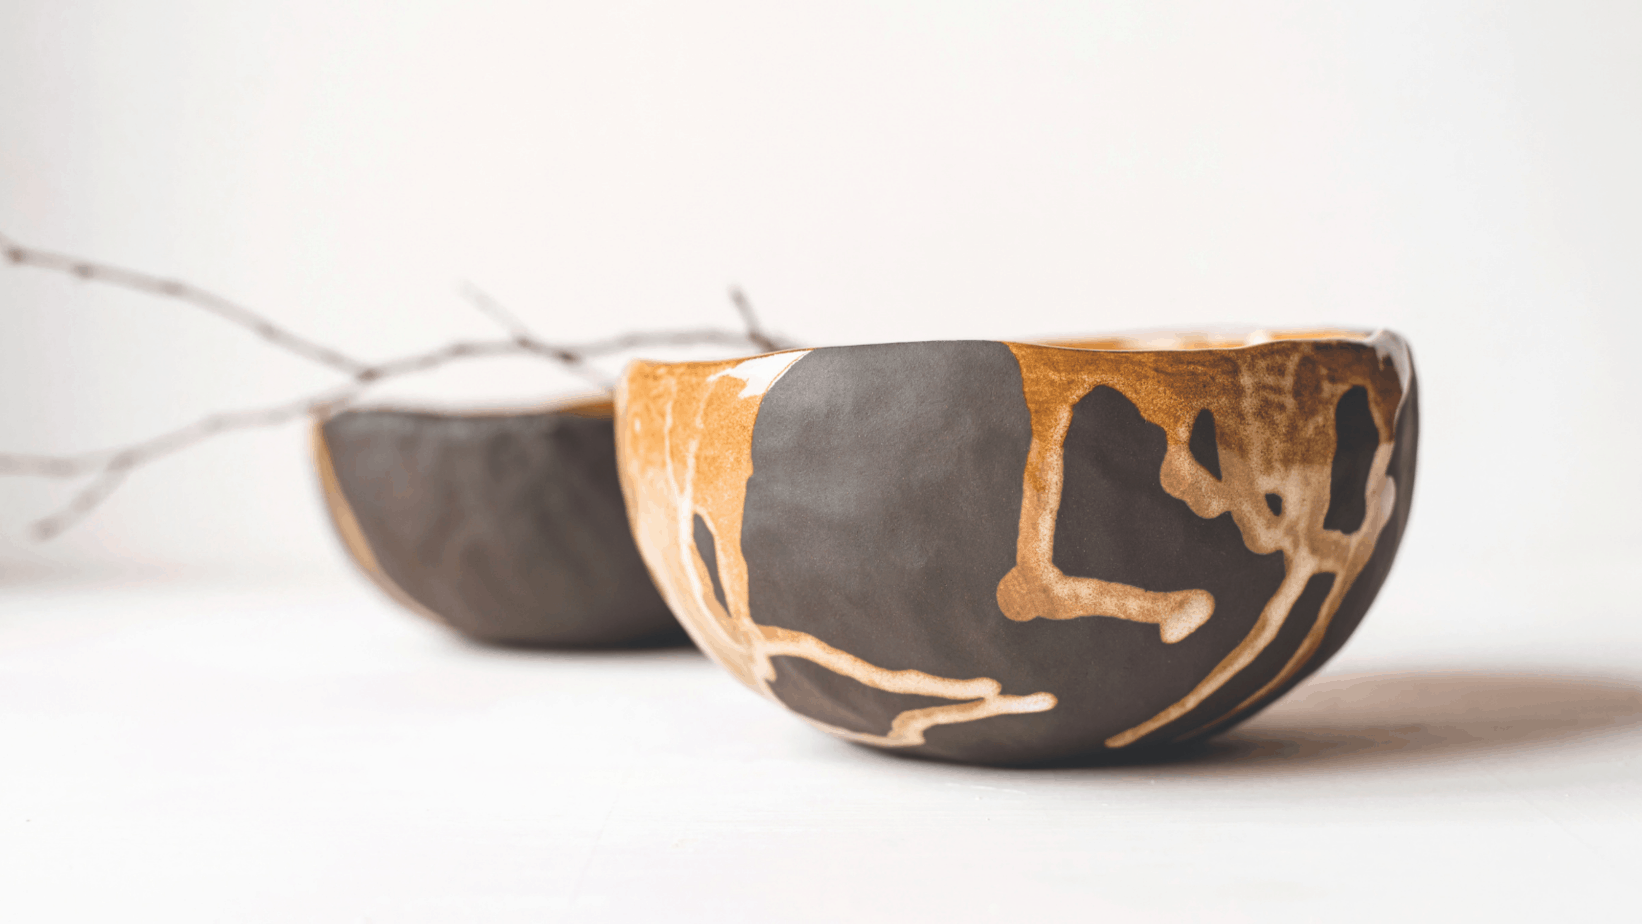 ceramic bowl with cracks | recover from burnout